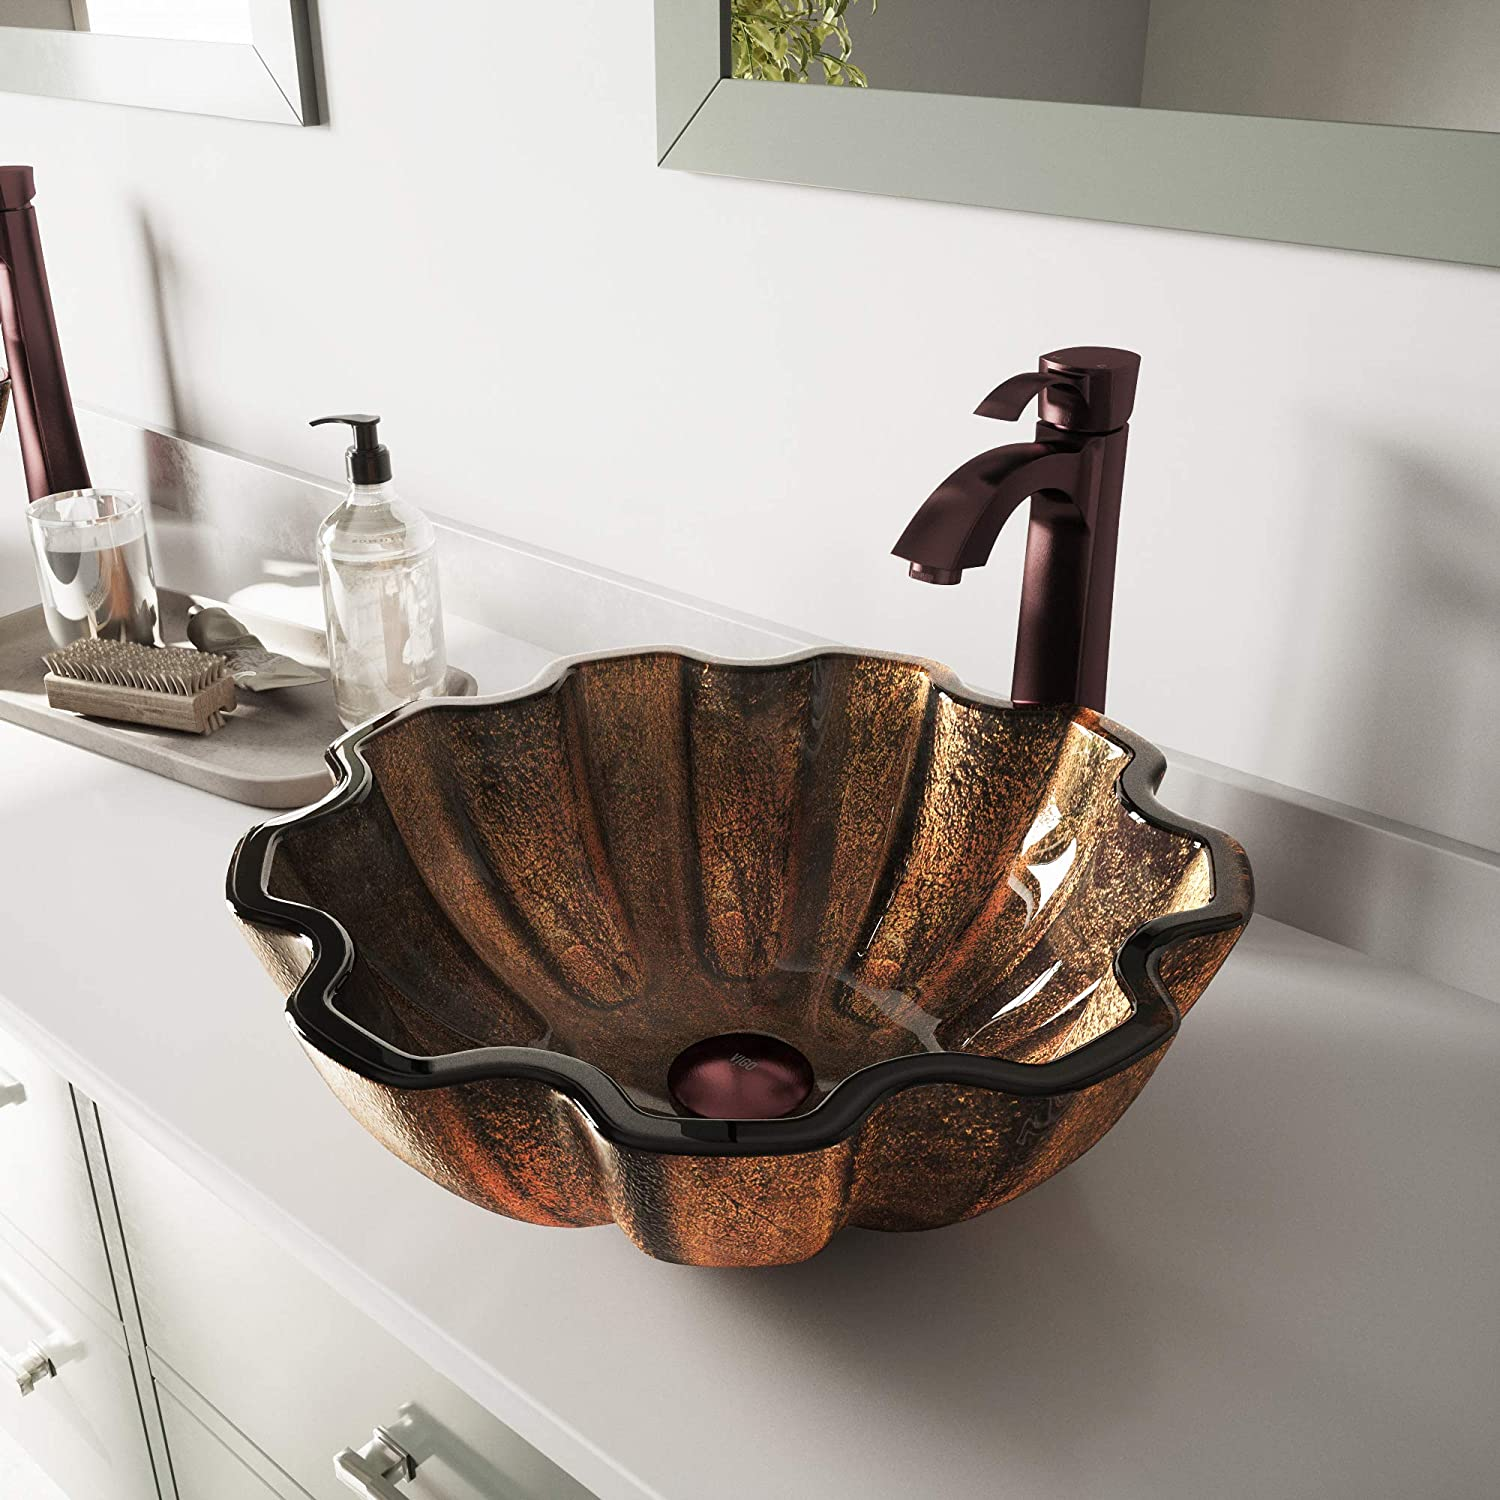 VIGO Walnut Shell Glass Vessel Bathroom Sink and Otis Vessel Faucet with Pop Up, Oil Rubbed Bronze